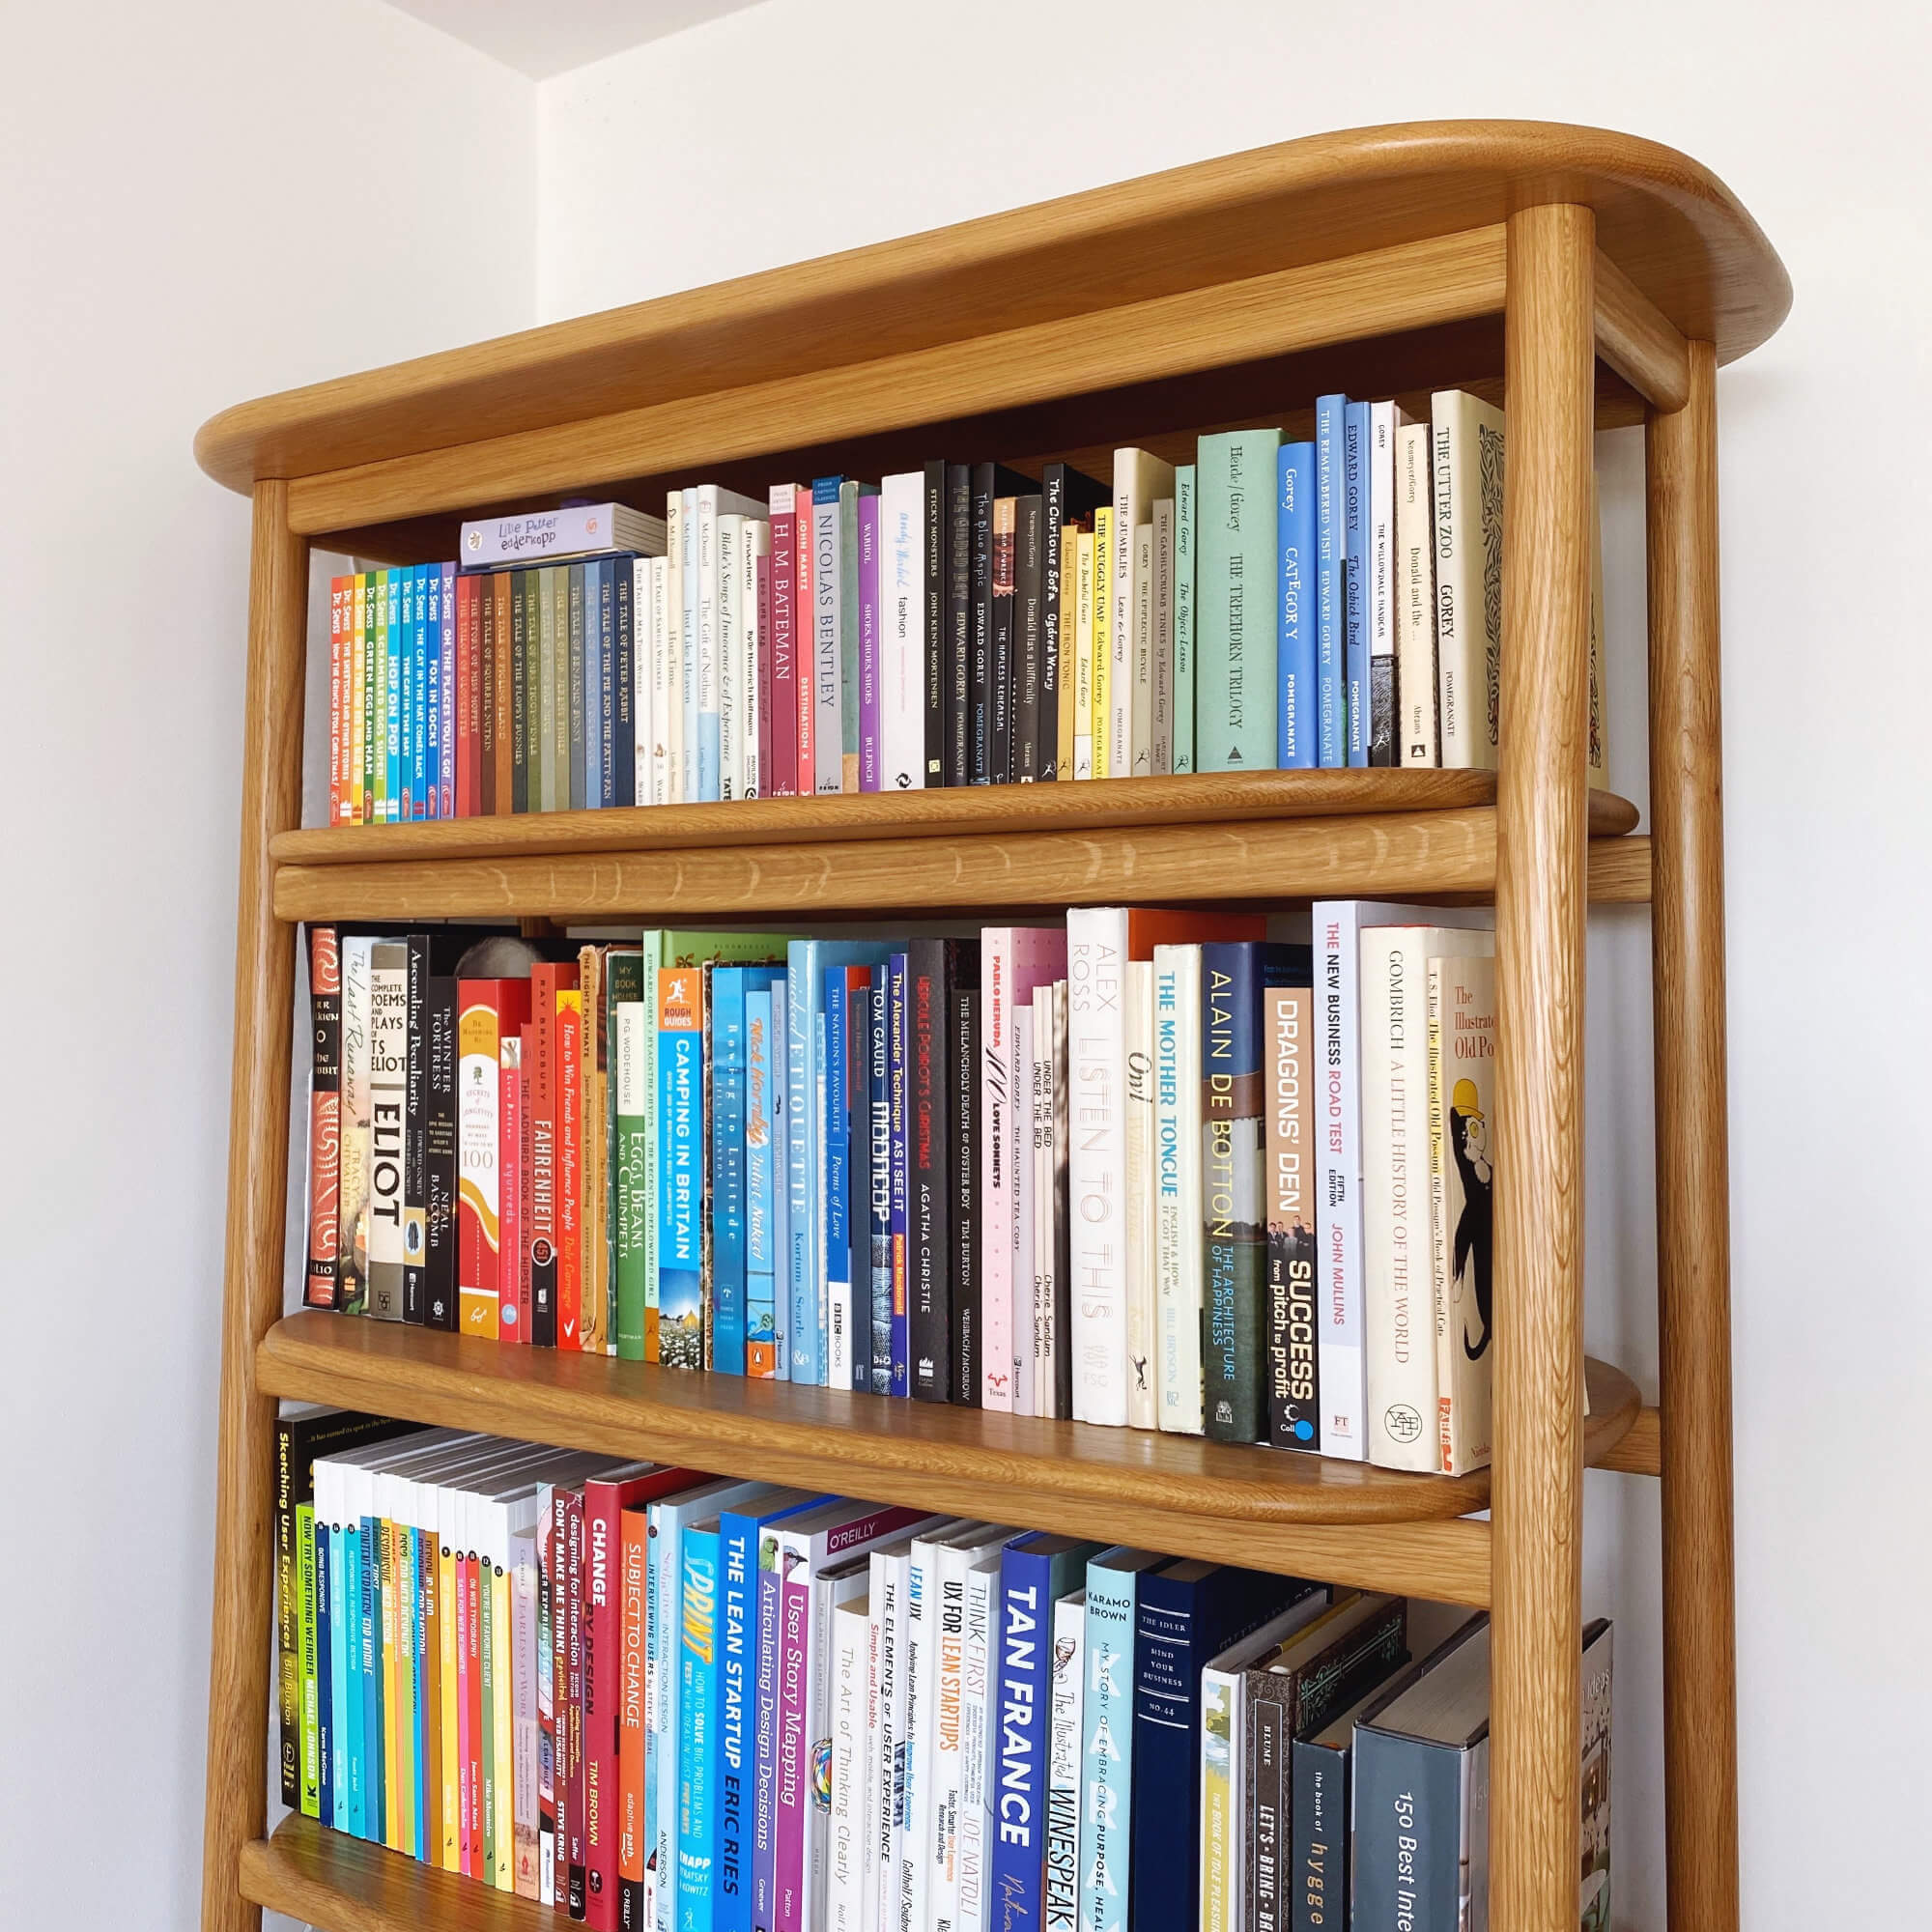 KonMari Tidying - Category Two: Books. View Of An Oak Scandi Style Bookcase Full Of Books Categorised By Colour